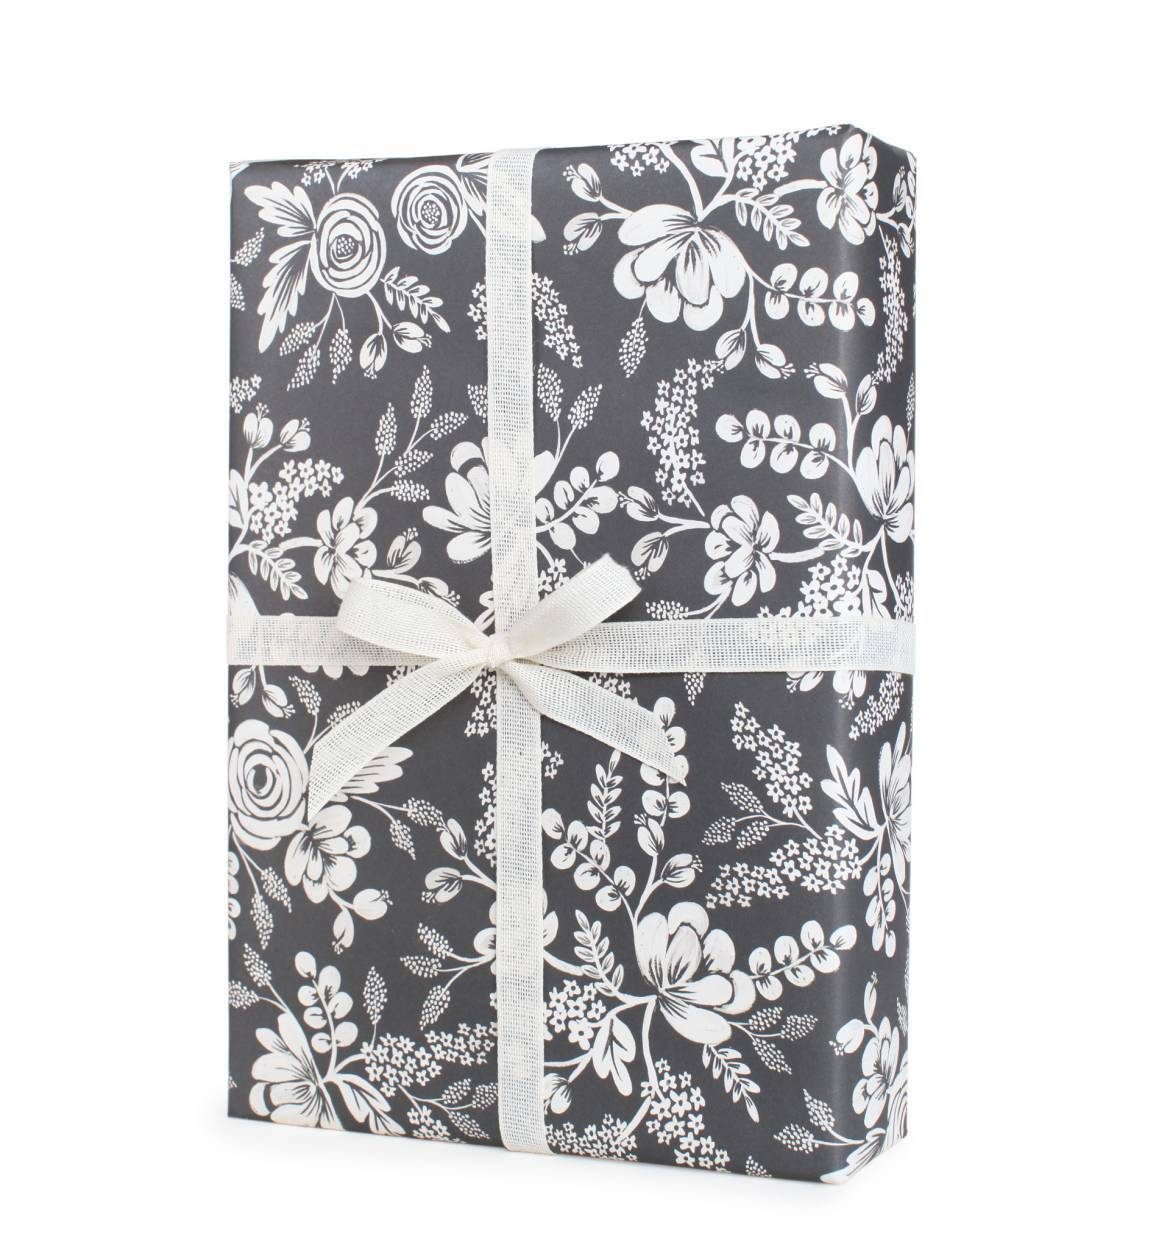 Rifle Paper Roll of 3 Wrapping Sheets- Choose Your Pattern